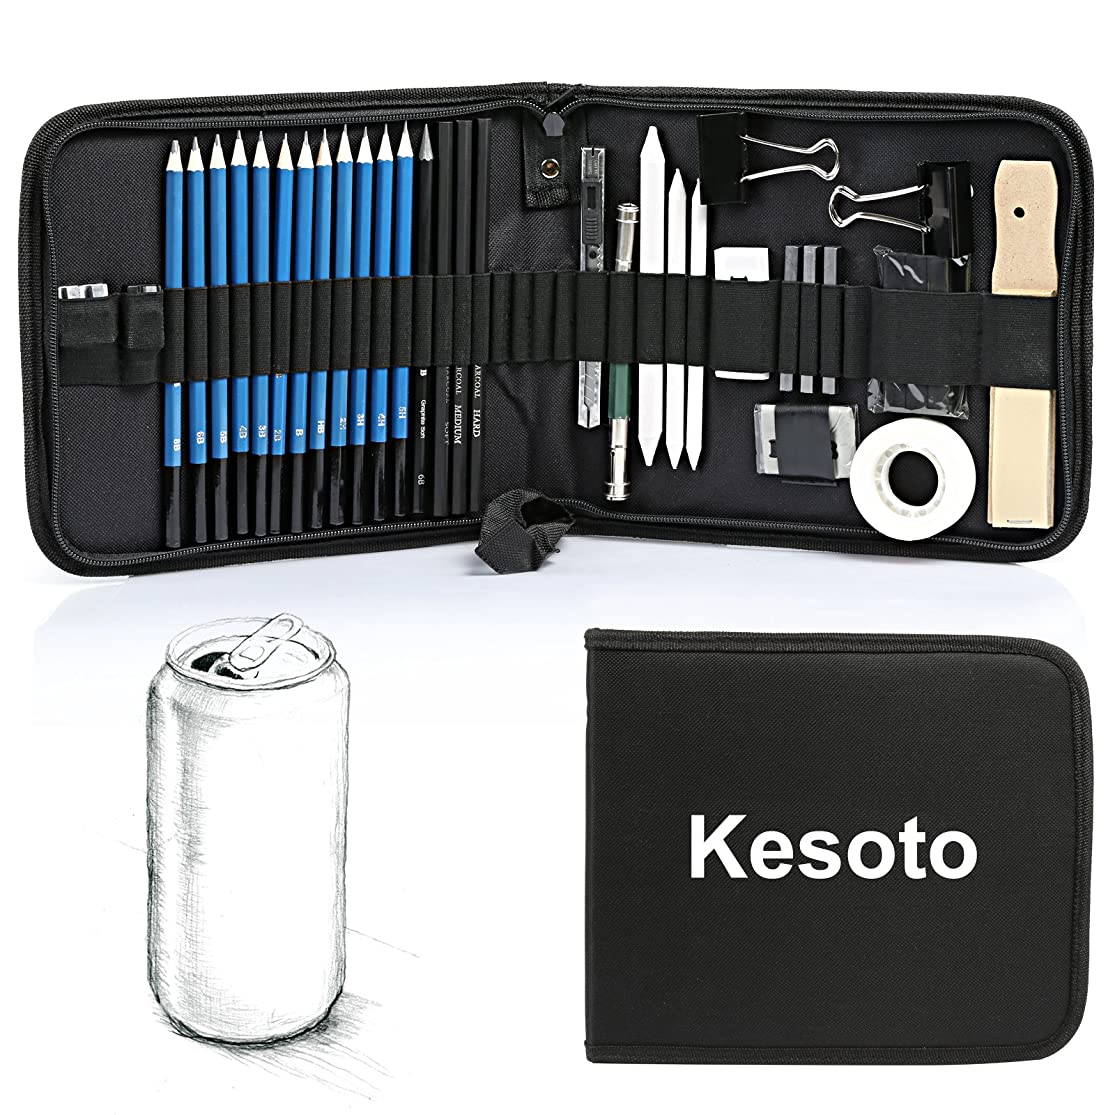 Kesoto 35 Pieces Art Supplies Drawing and Sketching Pencils Set with Graphite & Charcoal Pencils, Sticks and Tools ryskftma0